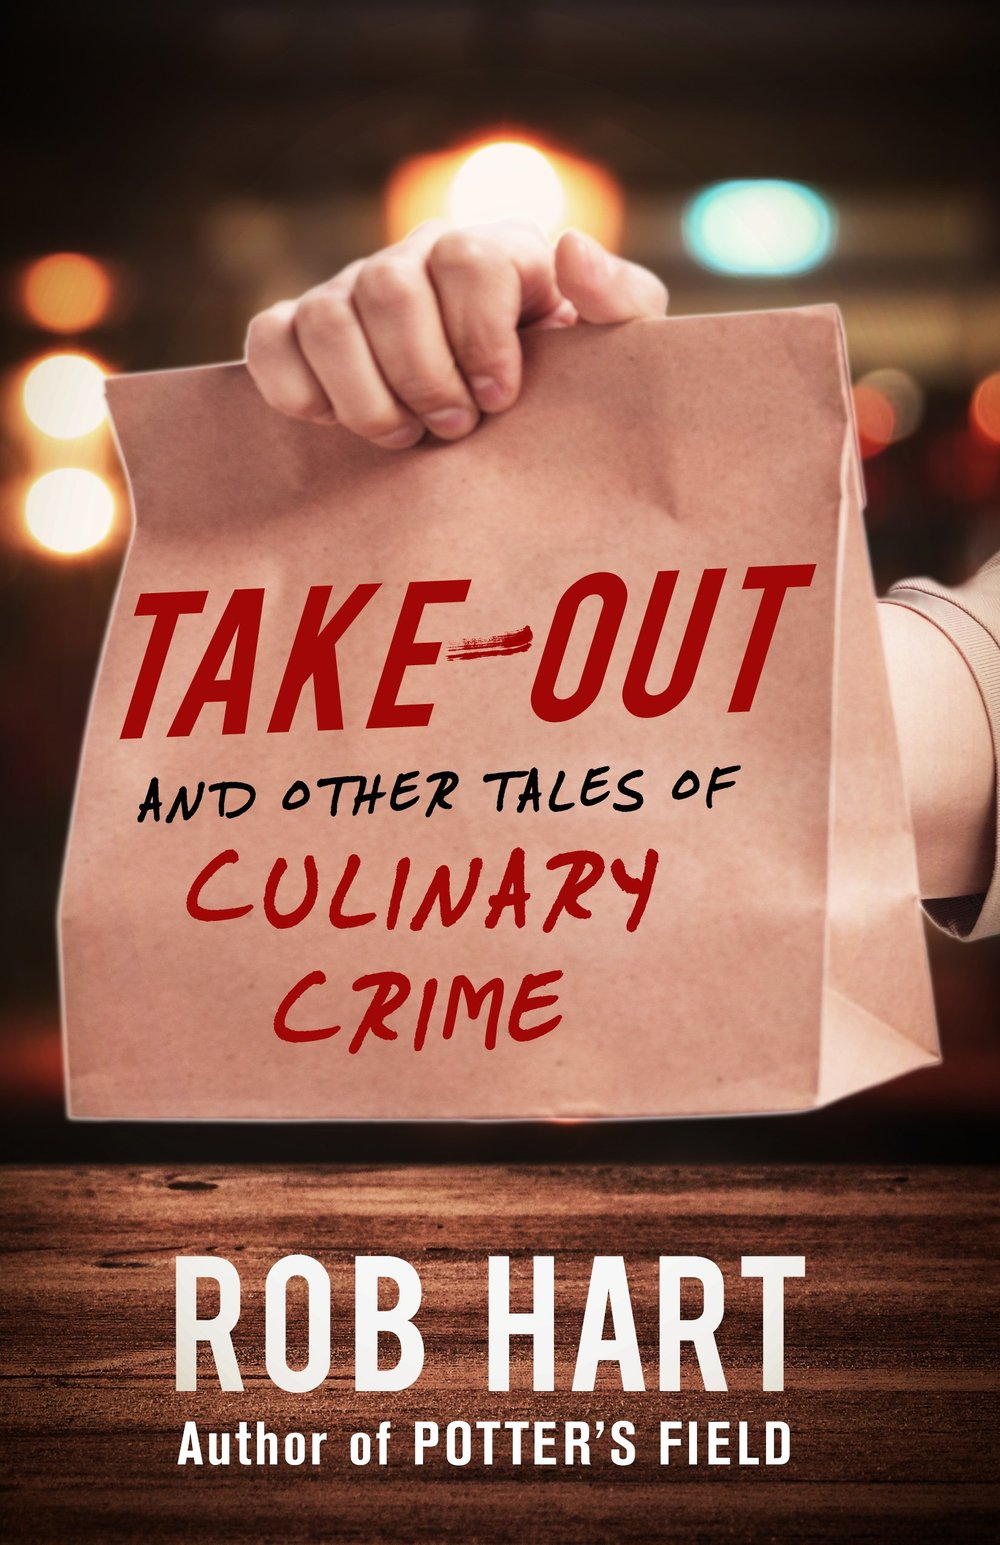 Take-Out and other tales of culinary crime_Rob Hart.jpg